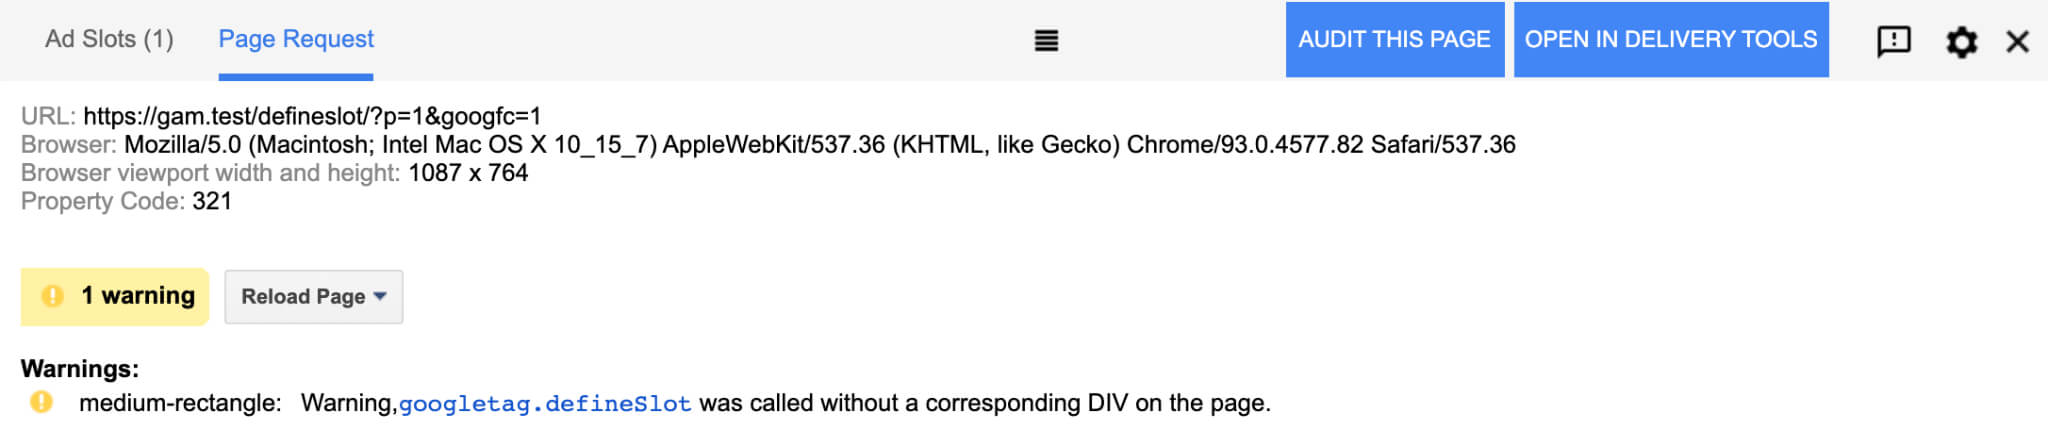 Warning, googletag.defineSlot was called without a corresponding DIV on the page